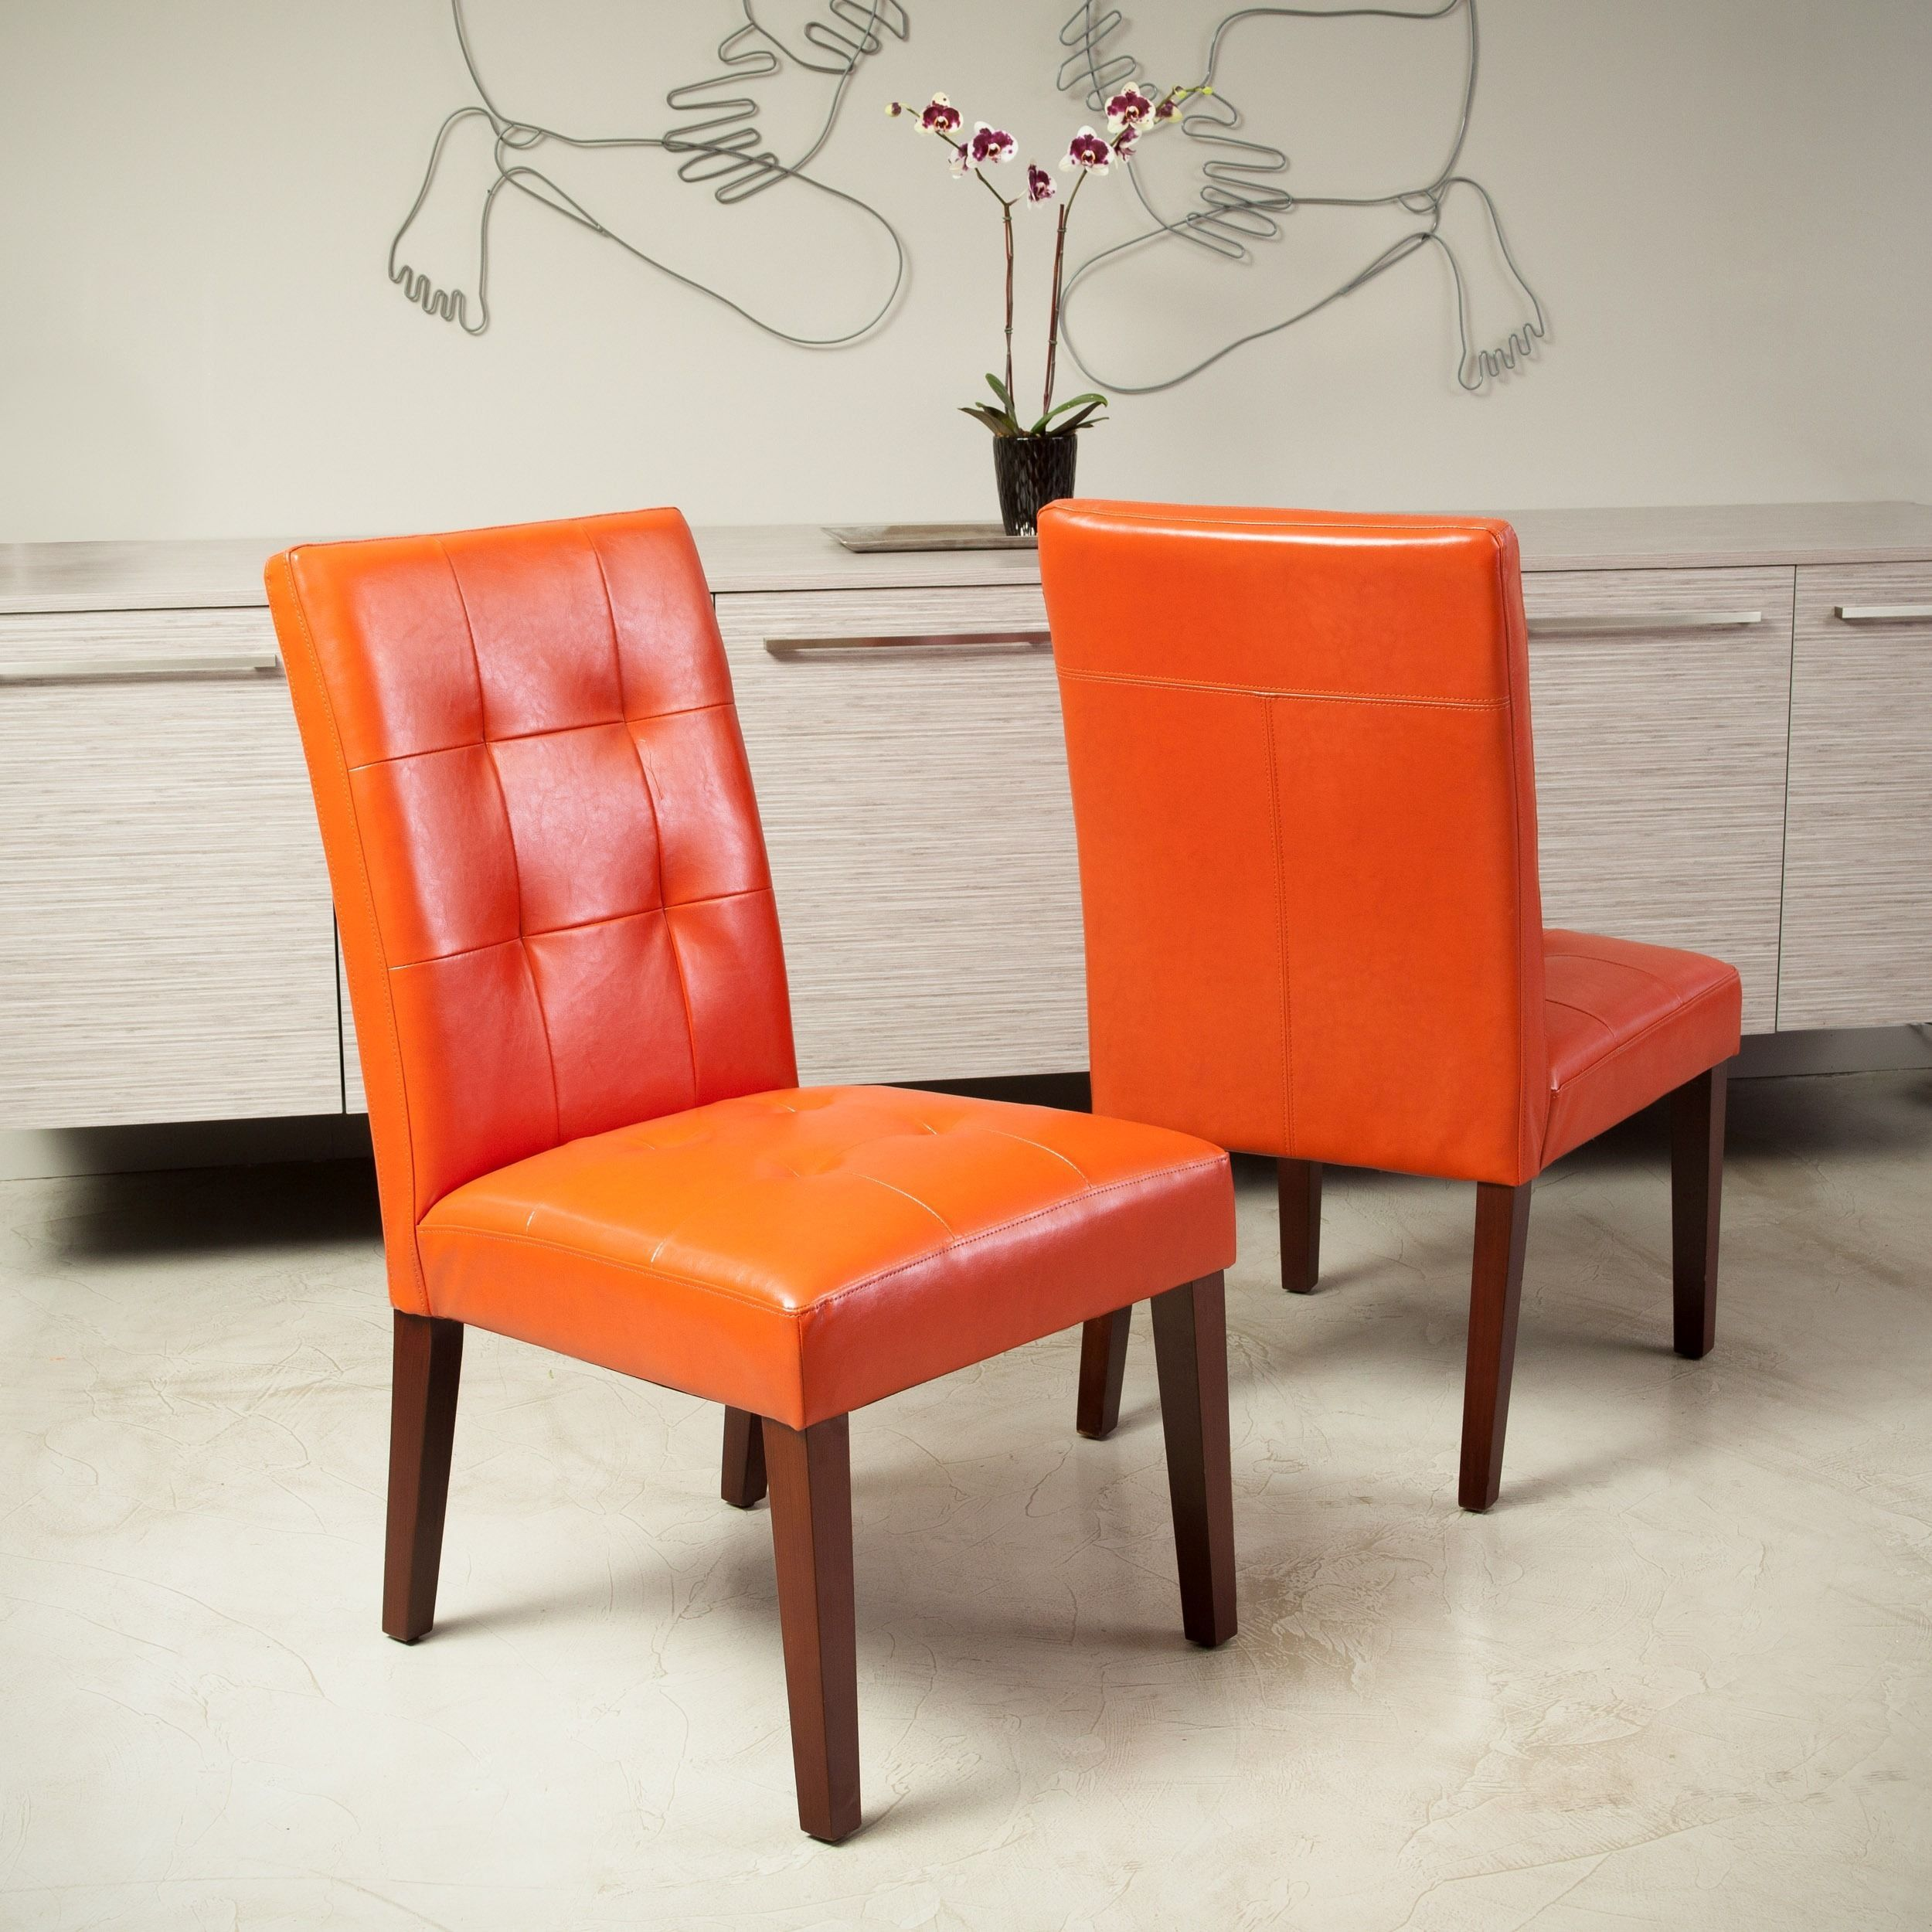 Cambridge Tufted Orange Bonded Leather Dining Chair Set of 2 by